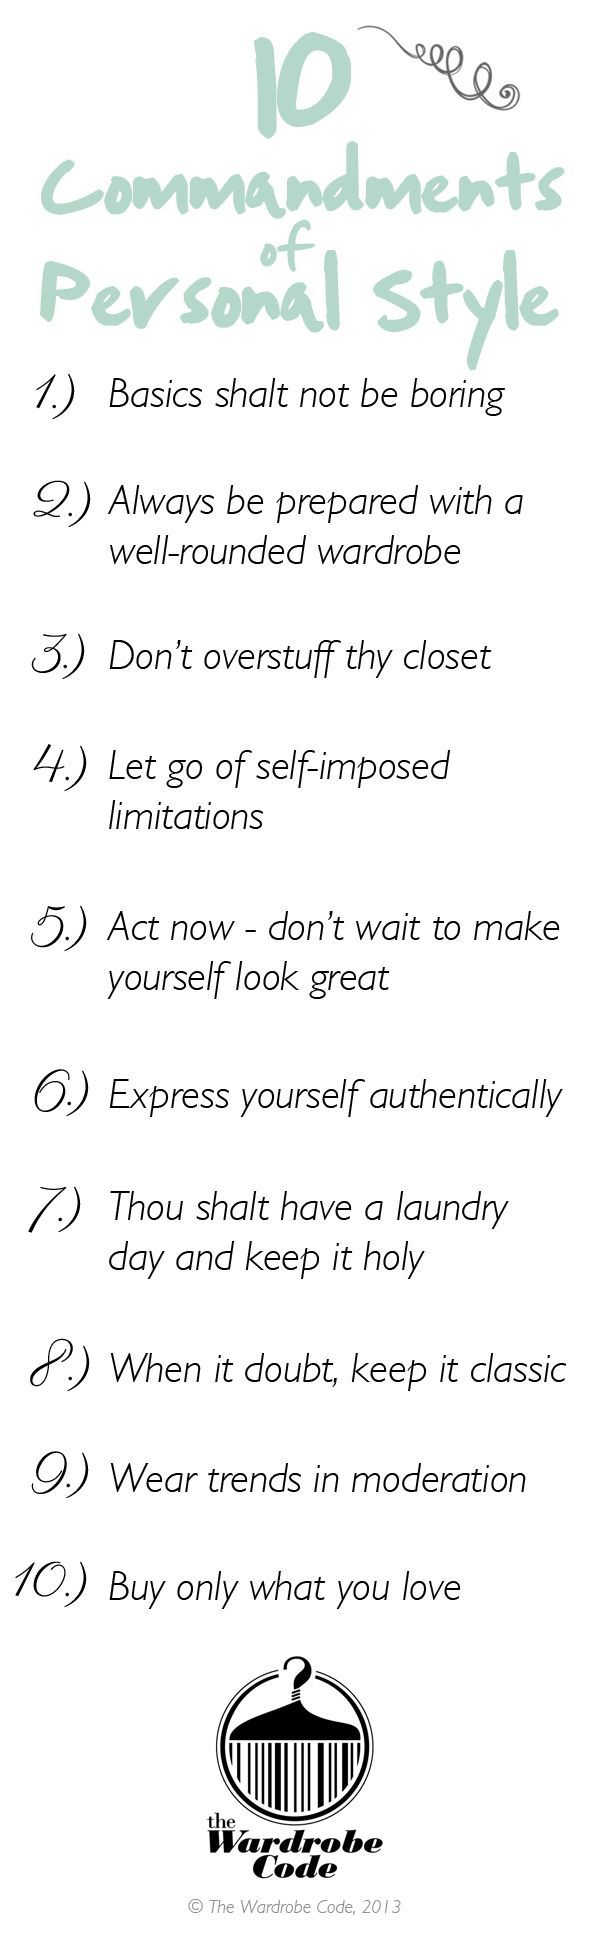 10 commandments of personal style... agreed!